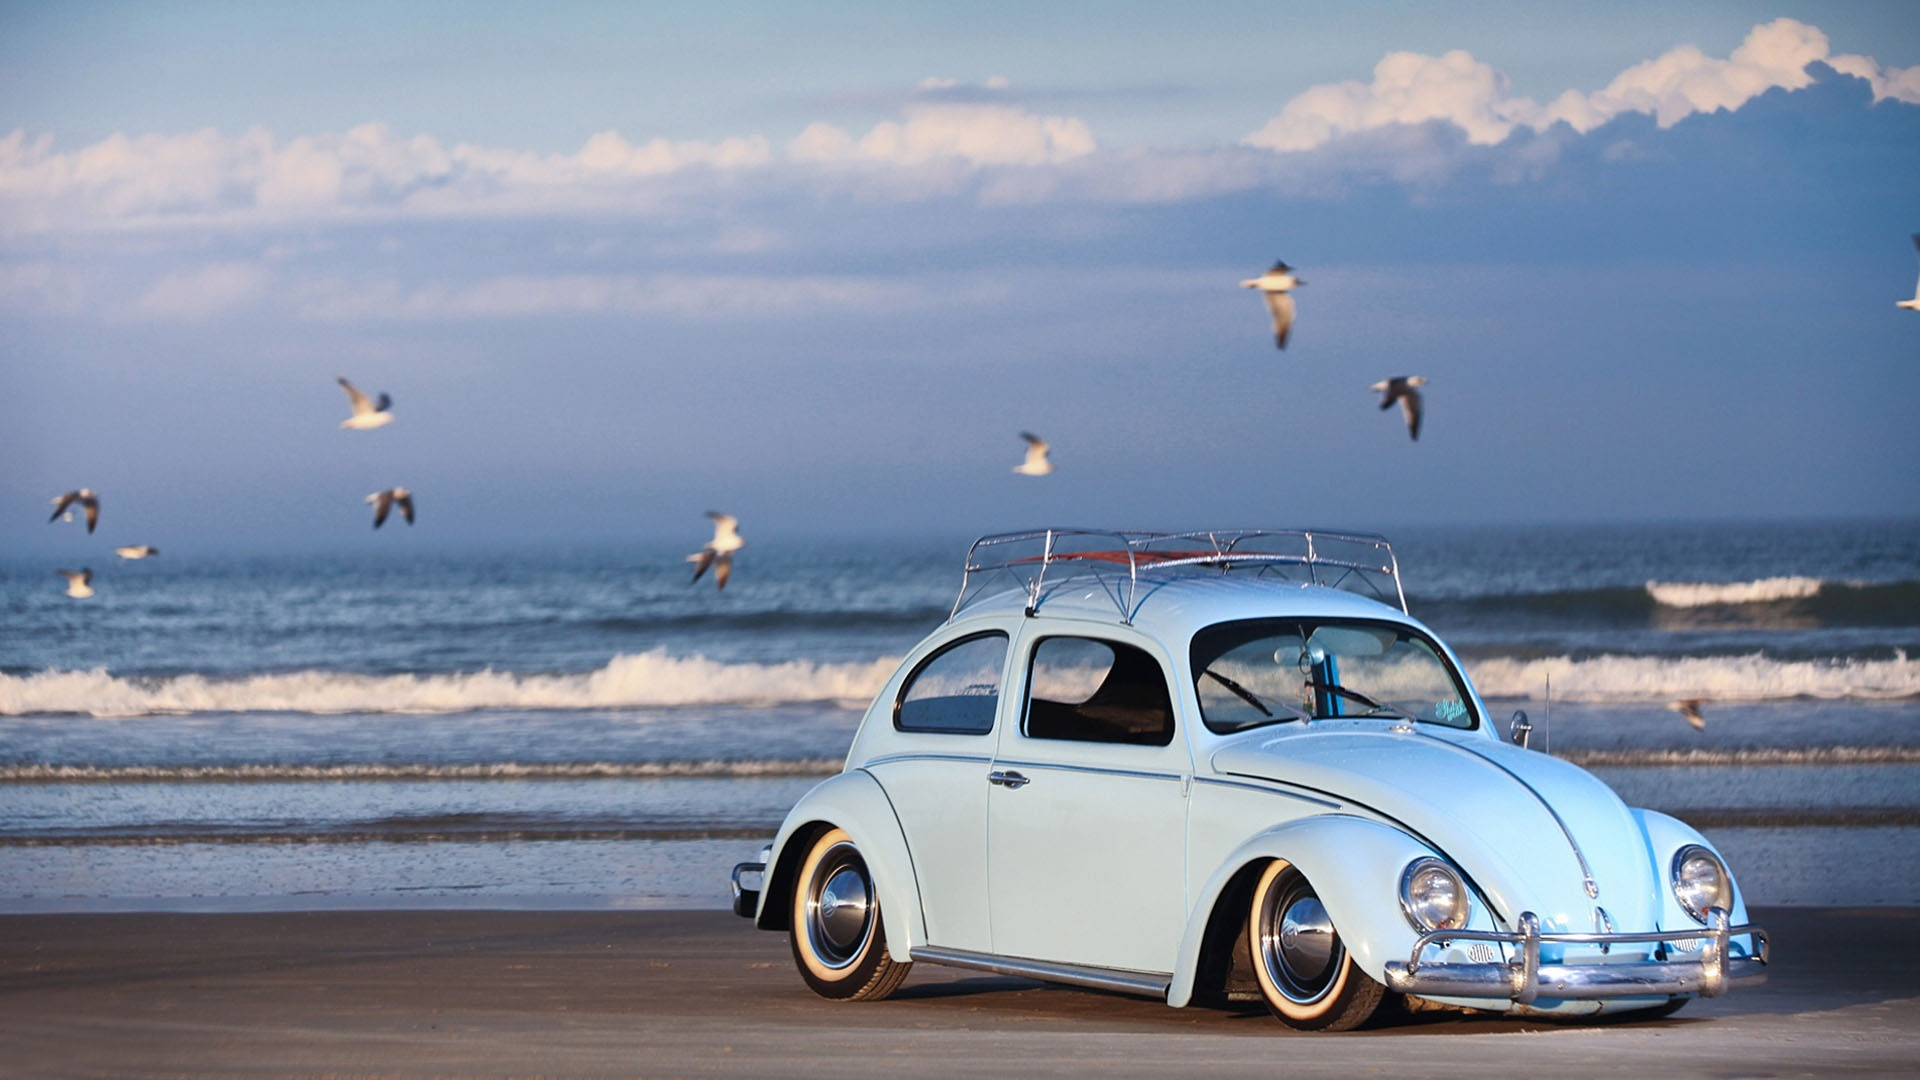 volkswagen full hd wallpaper and background image | 1920x1080 | id